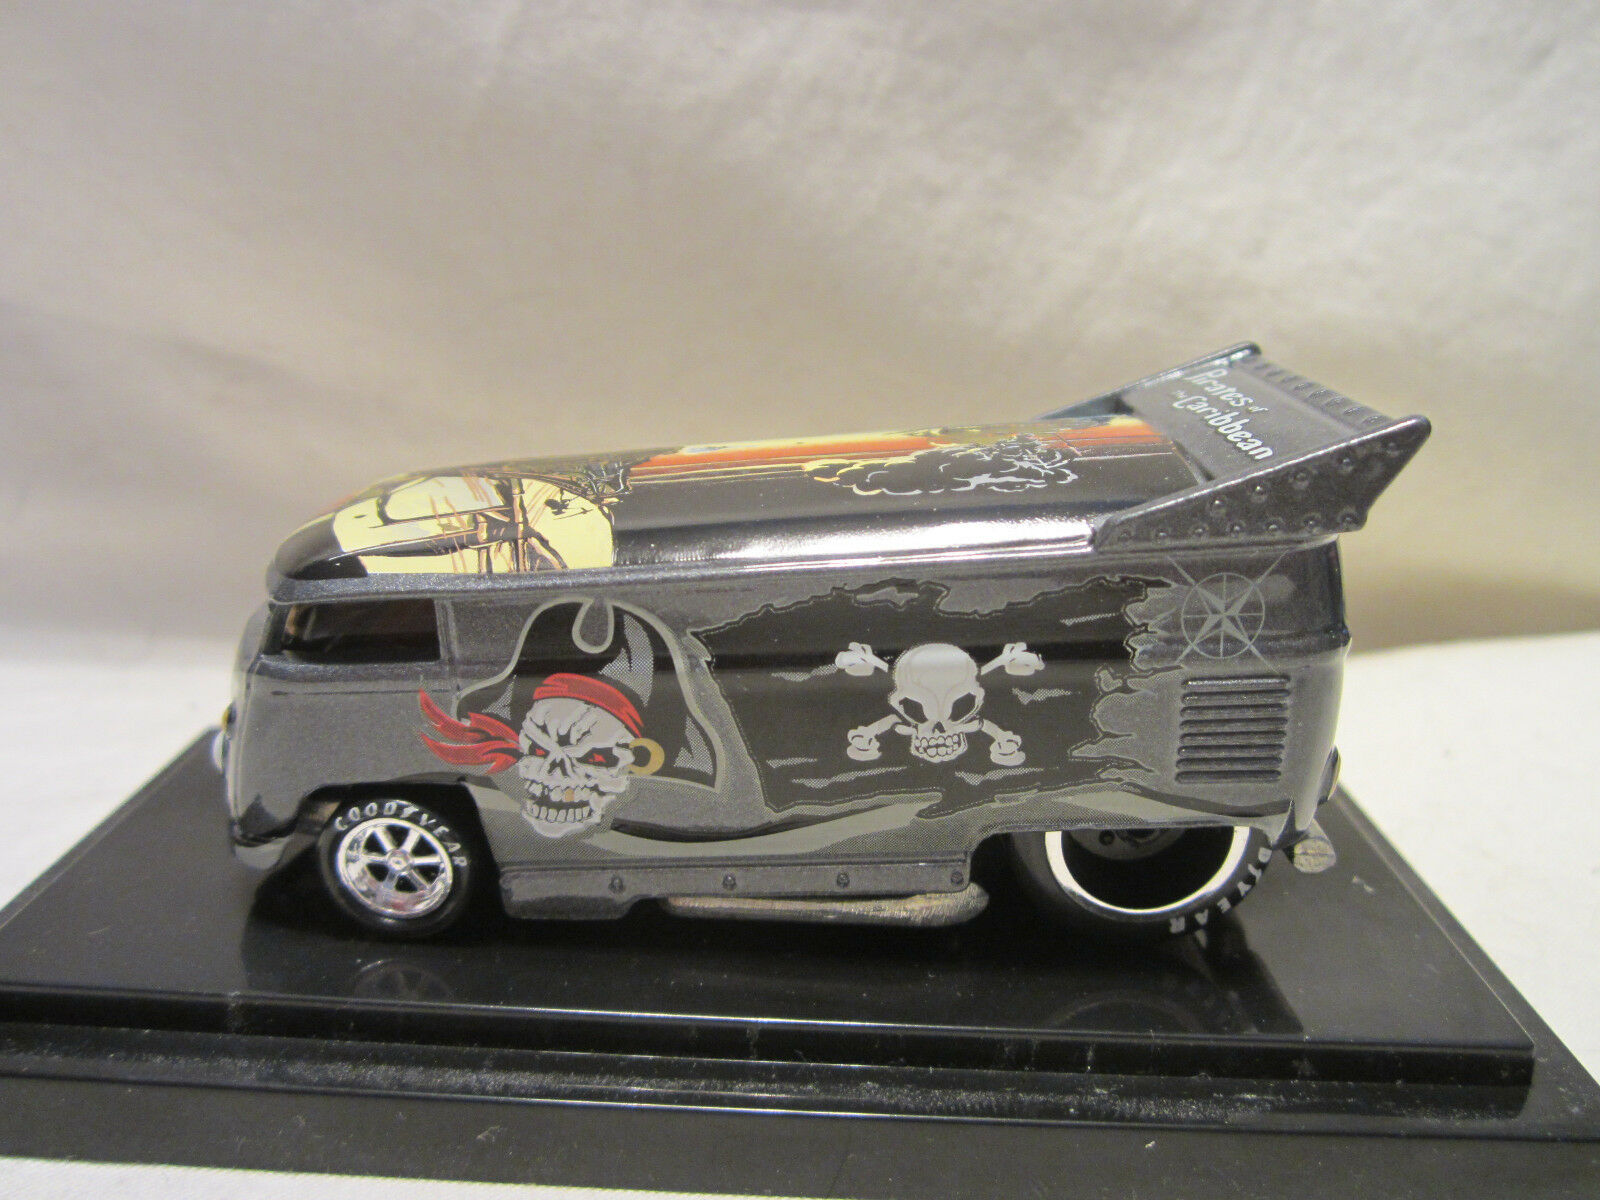 Hot wheels freiheit promotions piraten karibik vw bus 210   1300 ziehen.